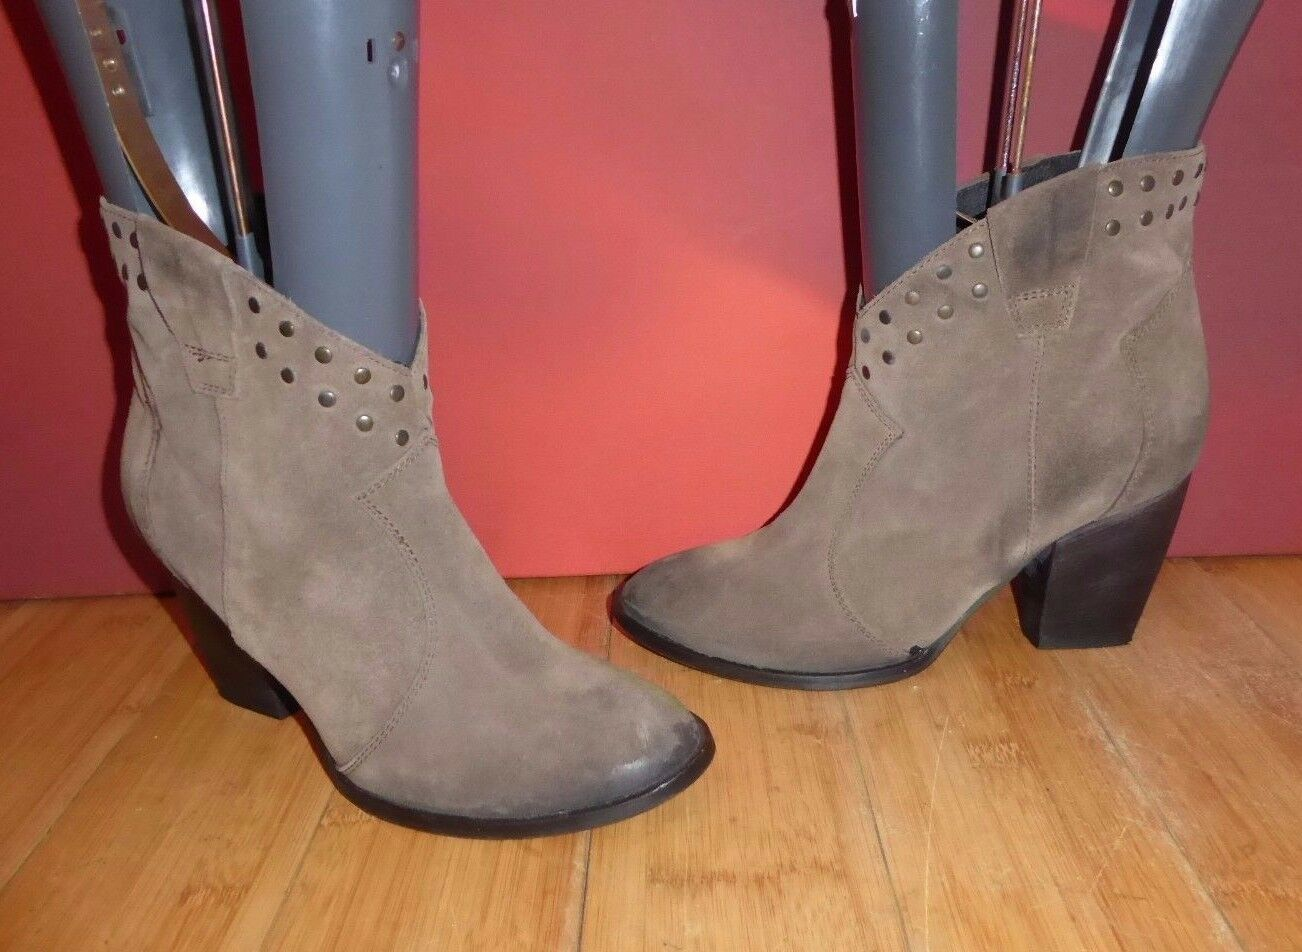 *11* SUPERB PIED A TERRE BROWN SUEDE LEATHER  STUD COWBOY ANKLE BOOTS UK 6 EU 39